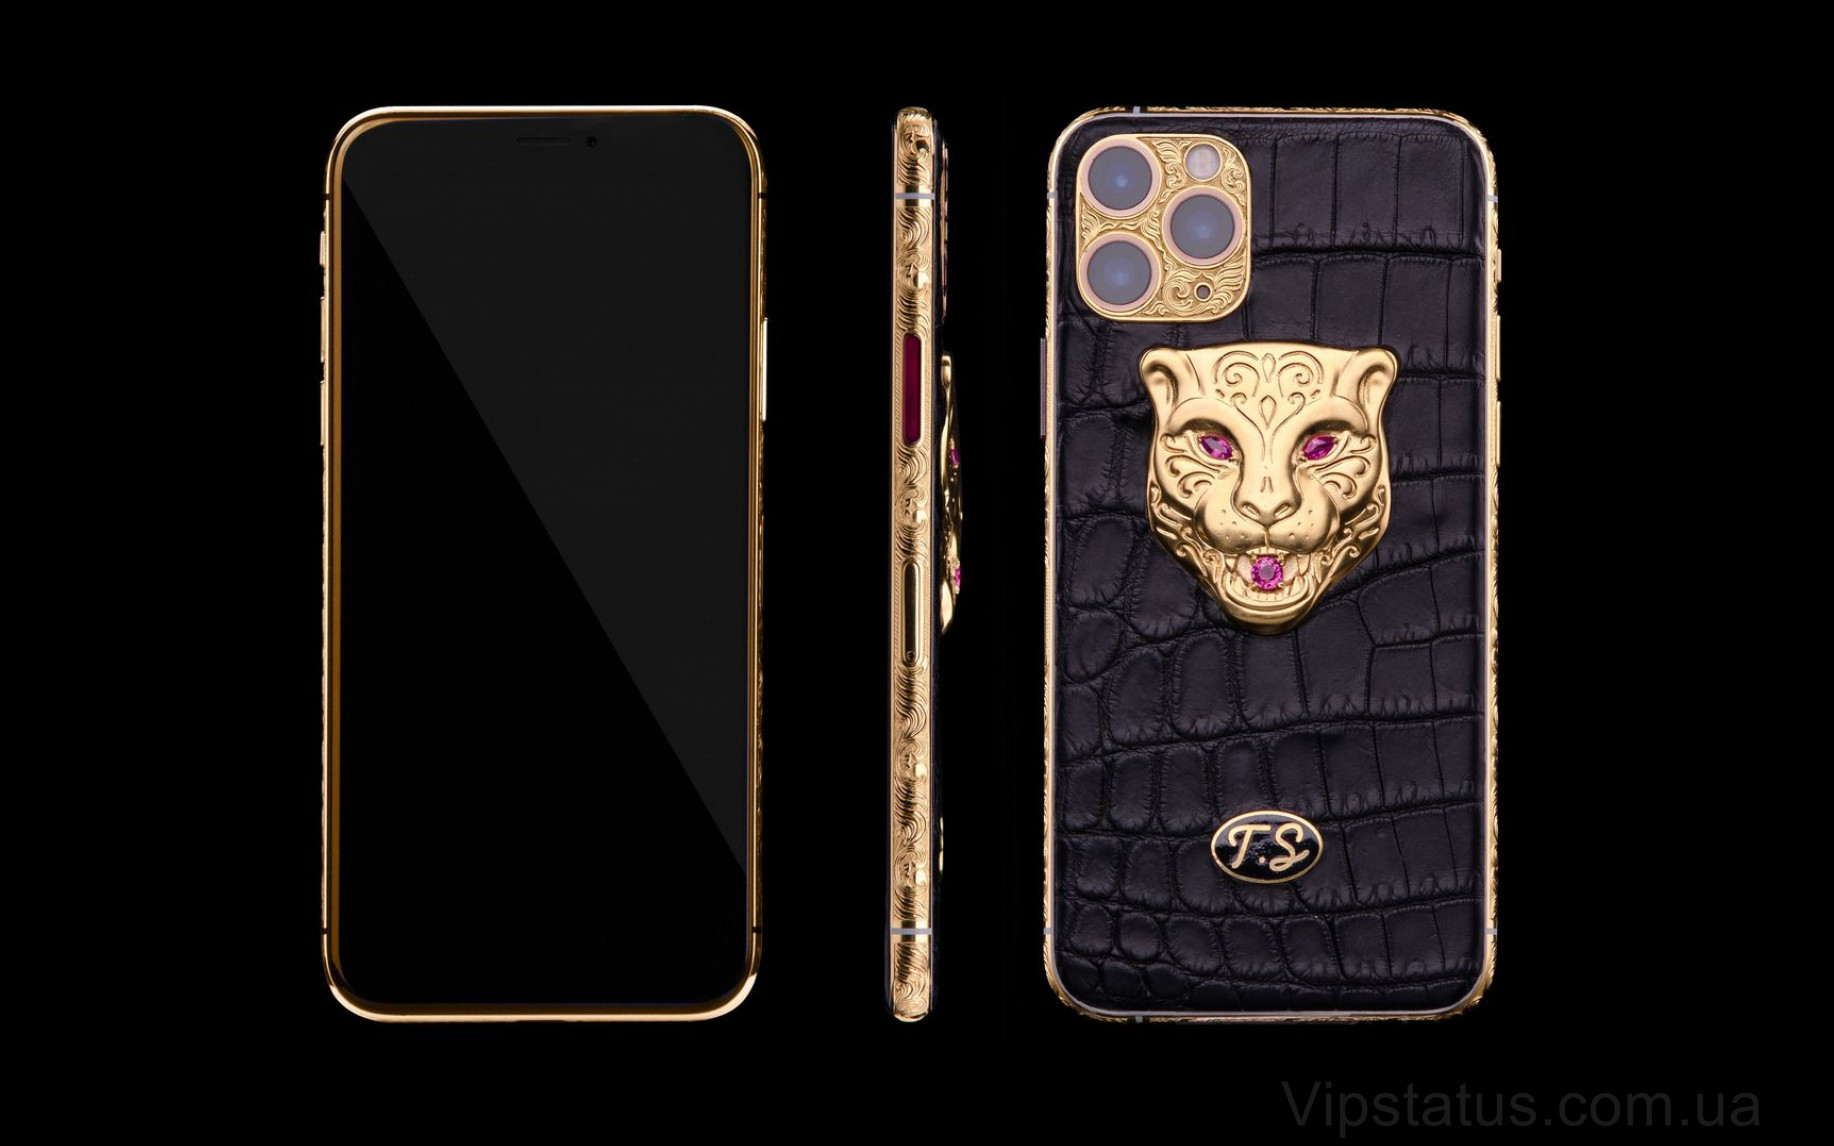 Elite Gucci Tiger IPHONE 11 PRO MAX 512 GB Gucci Tiger IPHONE 11 PRO MAX 512 GB image 6